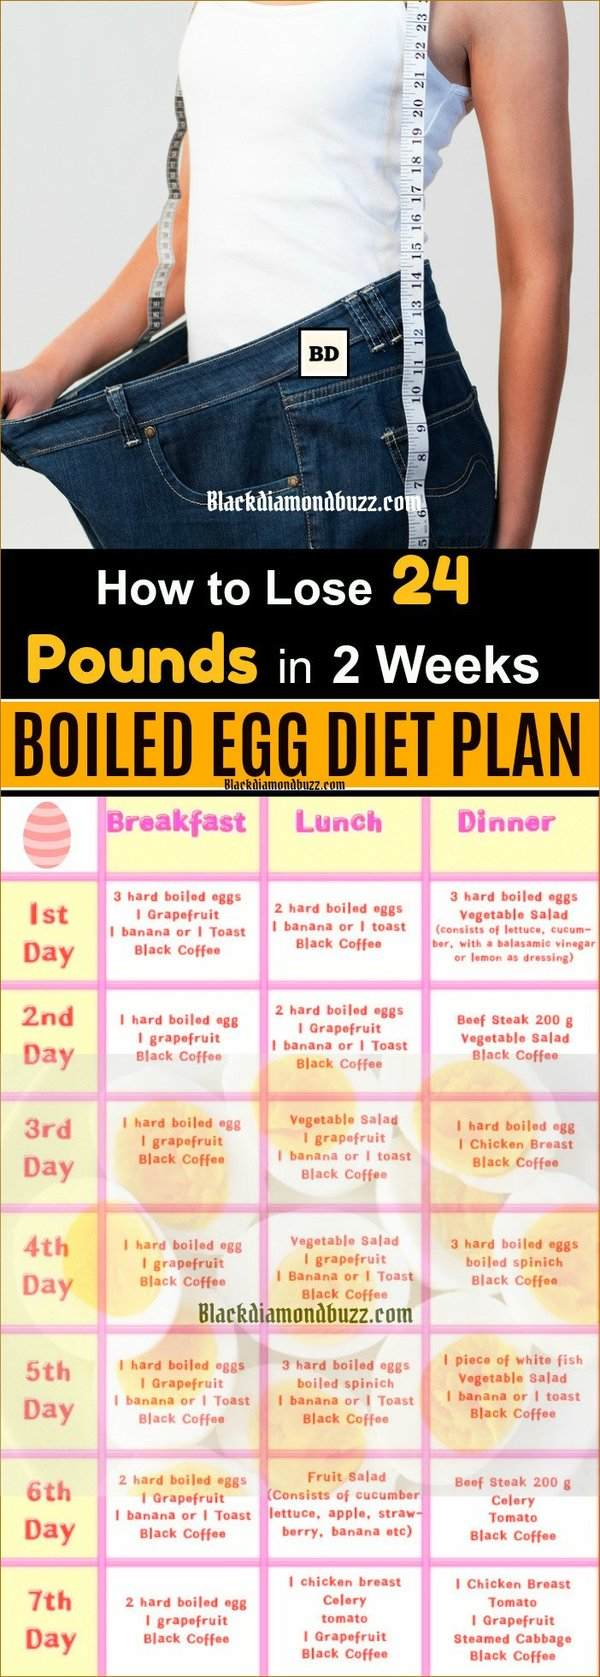 boiled egg diet 14 day lose 20 pounds